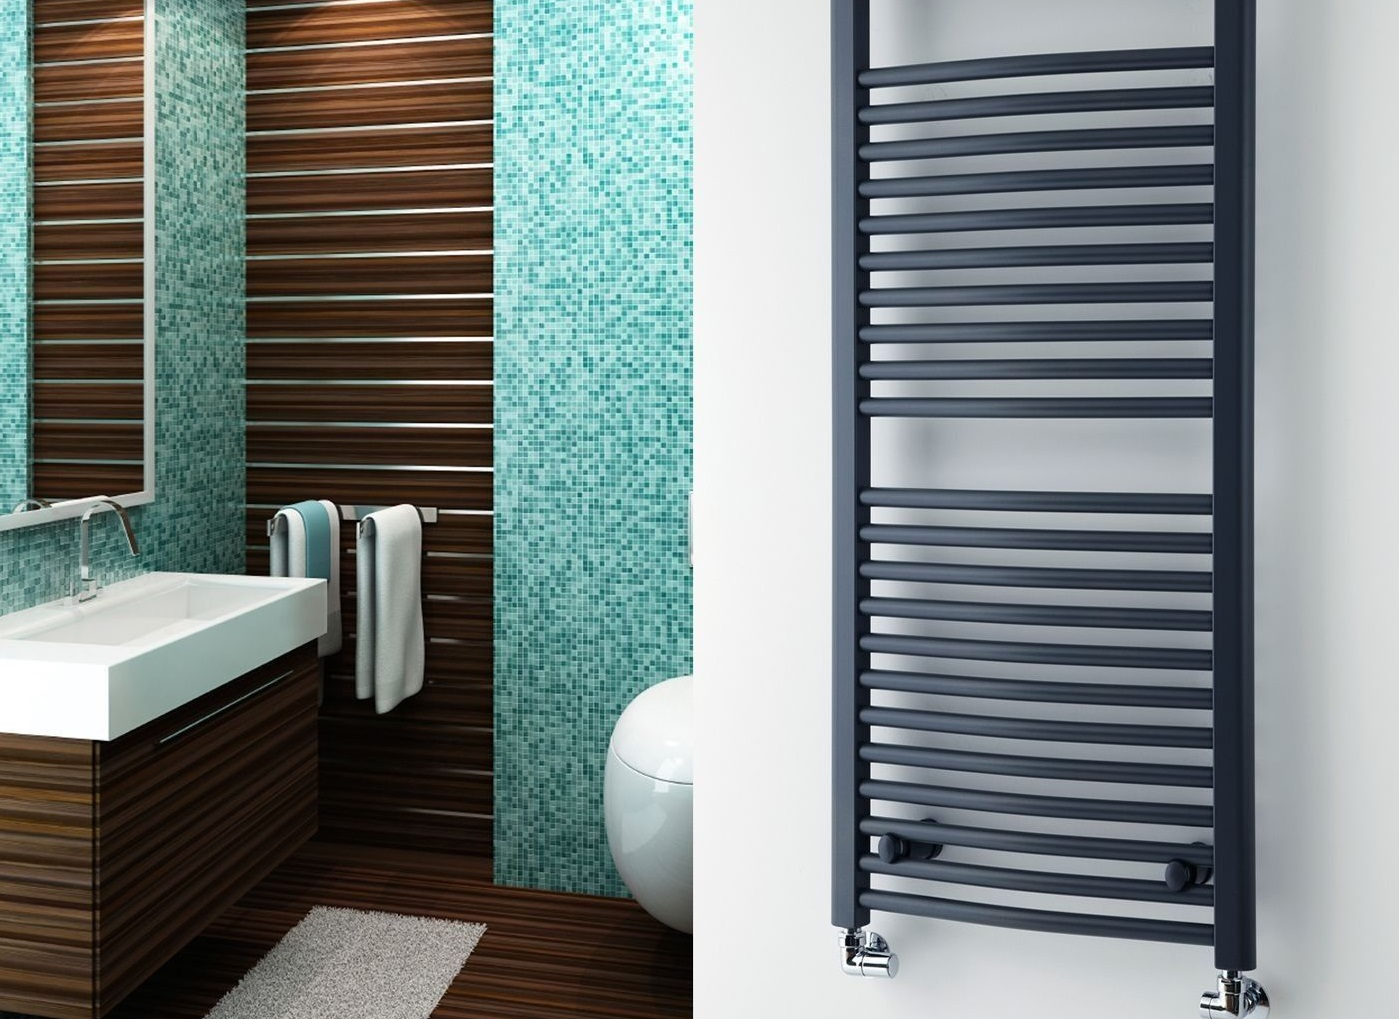 Why Hydronic Towel Warmers are a brilliant Bathroom choice